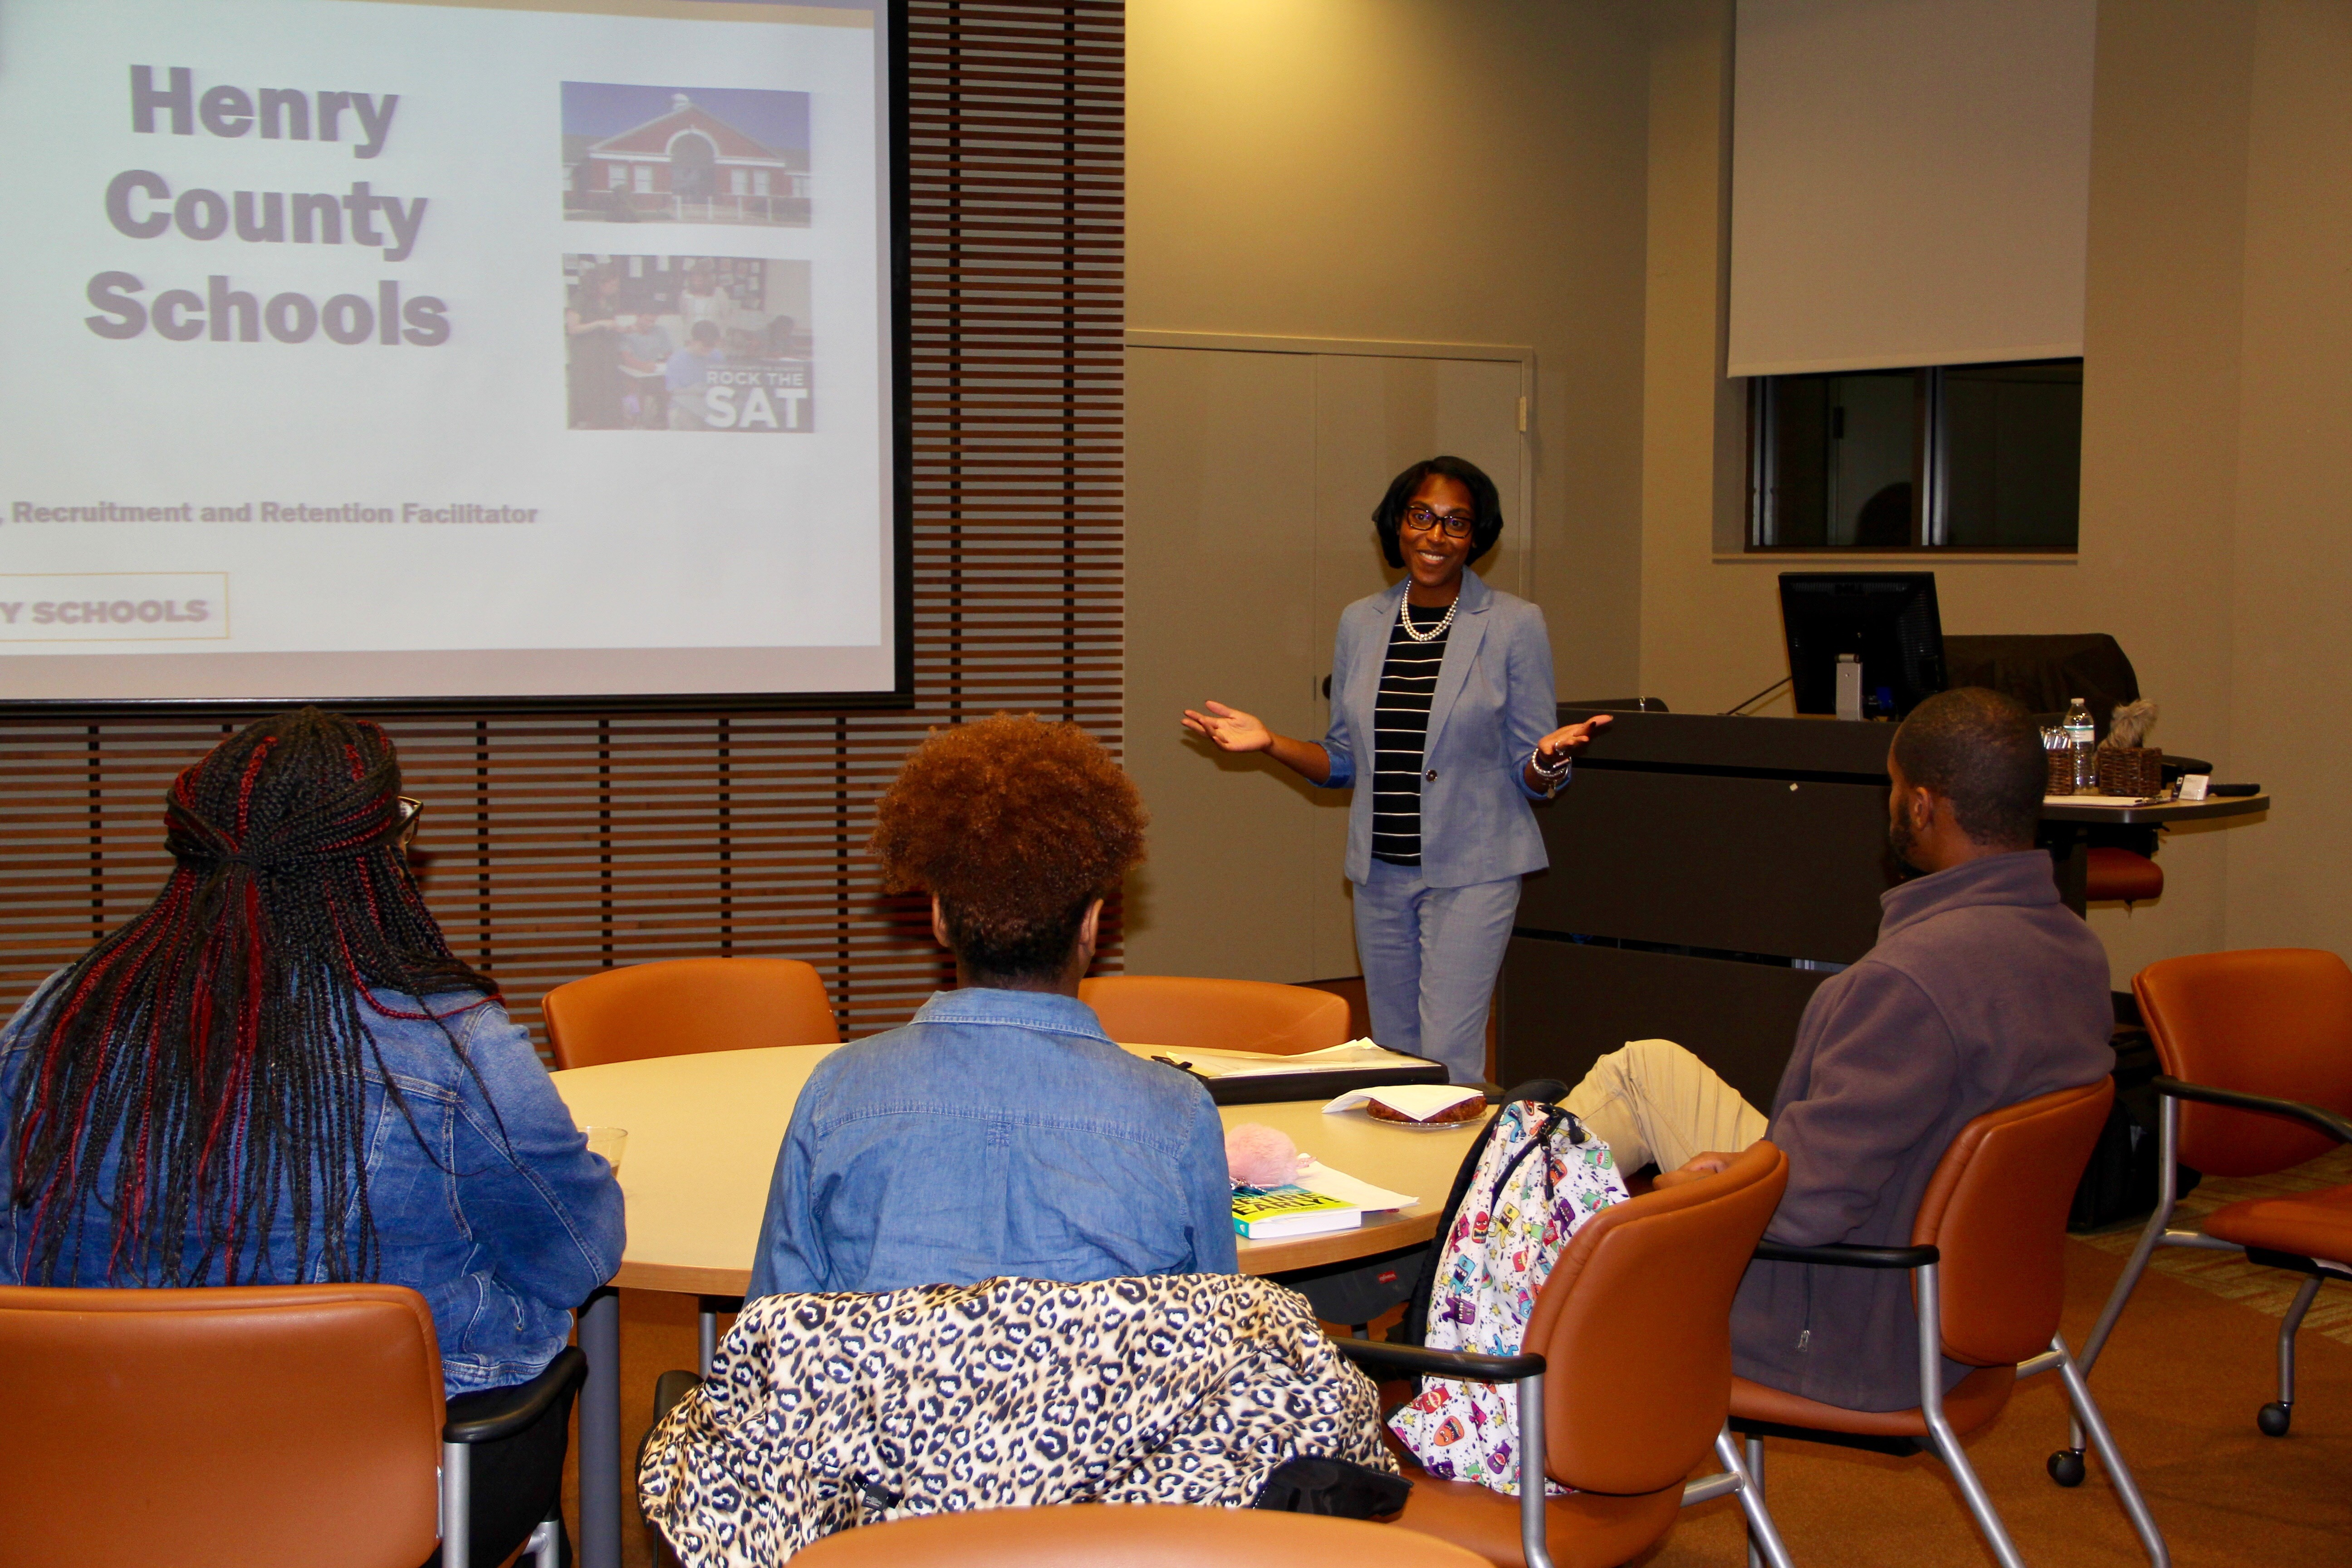 Henry County Schools Recruitment and Retention Facilitator Shirell Neal addressed Gordon State College students.